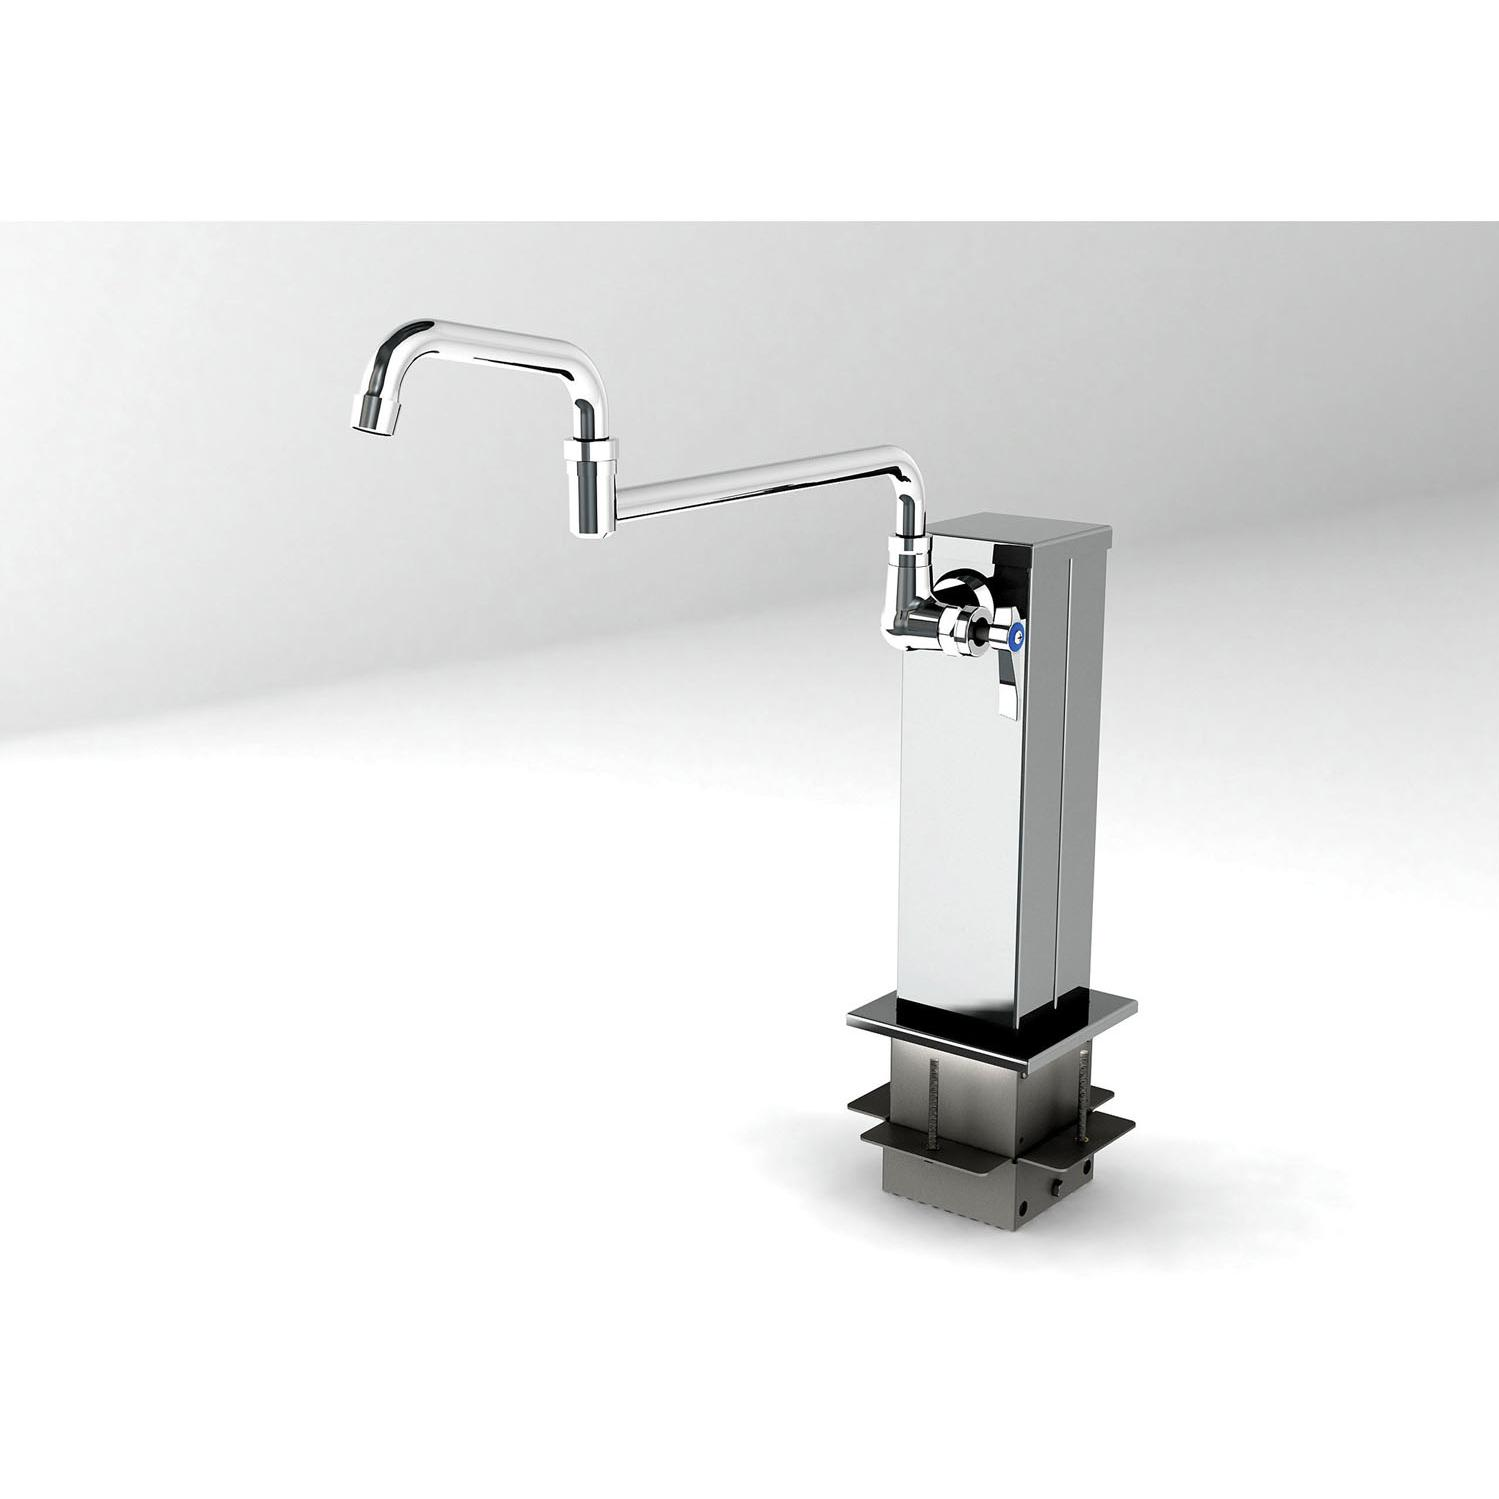 Alfresco Adjustable Outdoor Rated Pot Filler Tower With Cold Water Faucet - AXEVP-T10